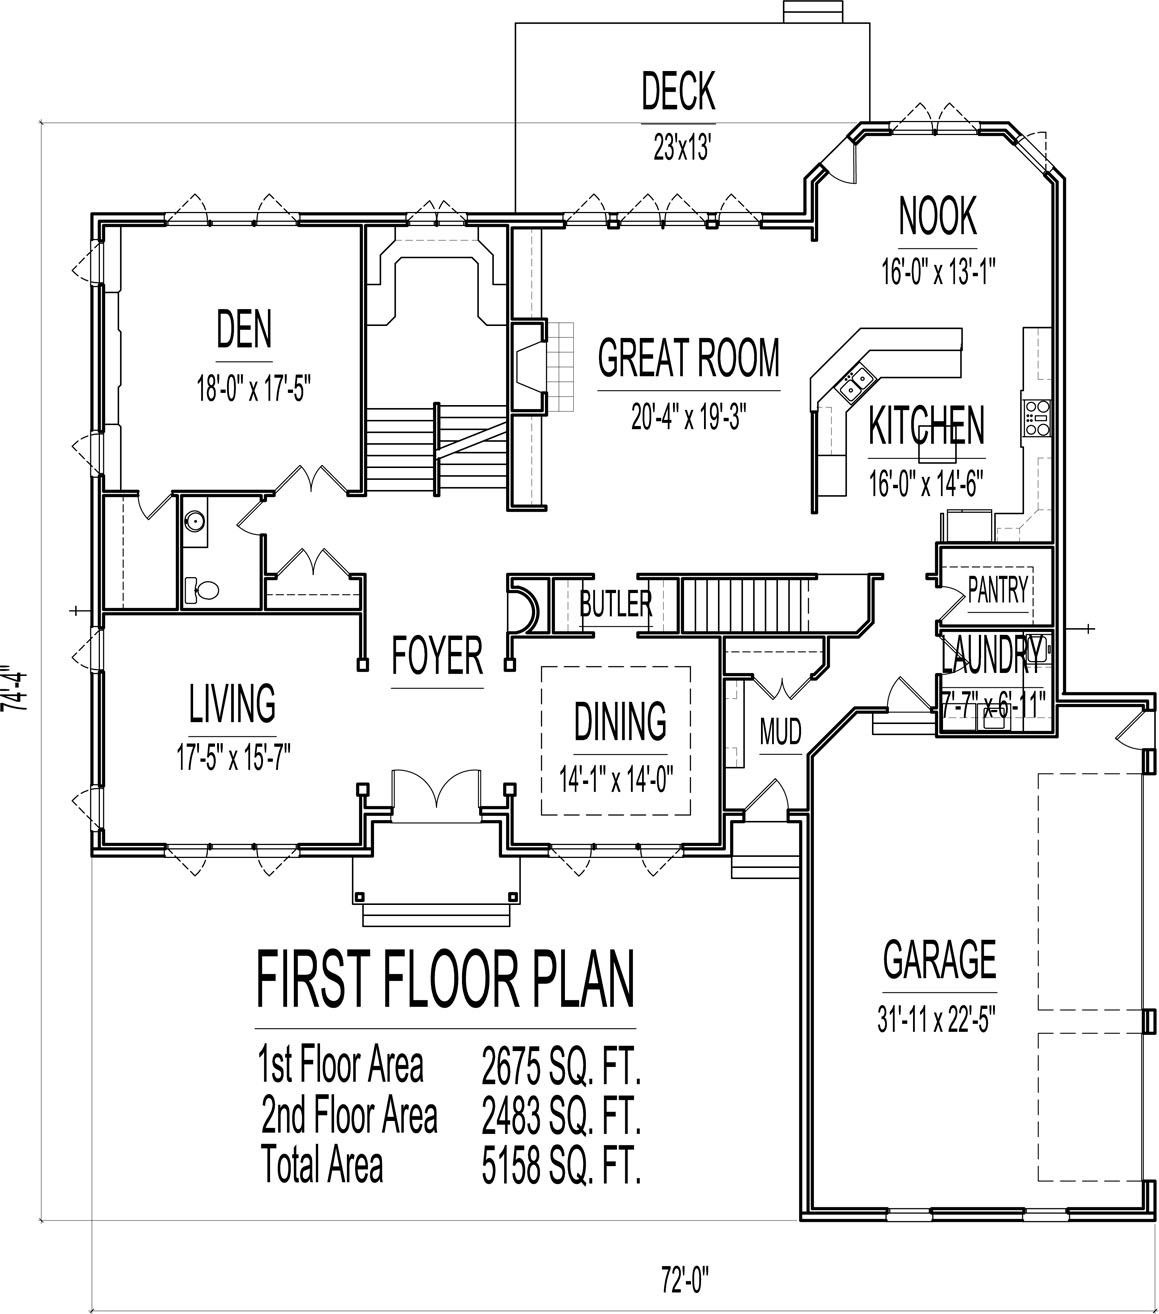 5000 sq ft house floor plans 1500 sq ft house 2 story 5 for 15000 square foot house plans